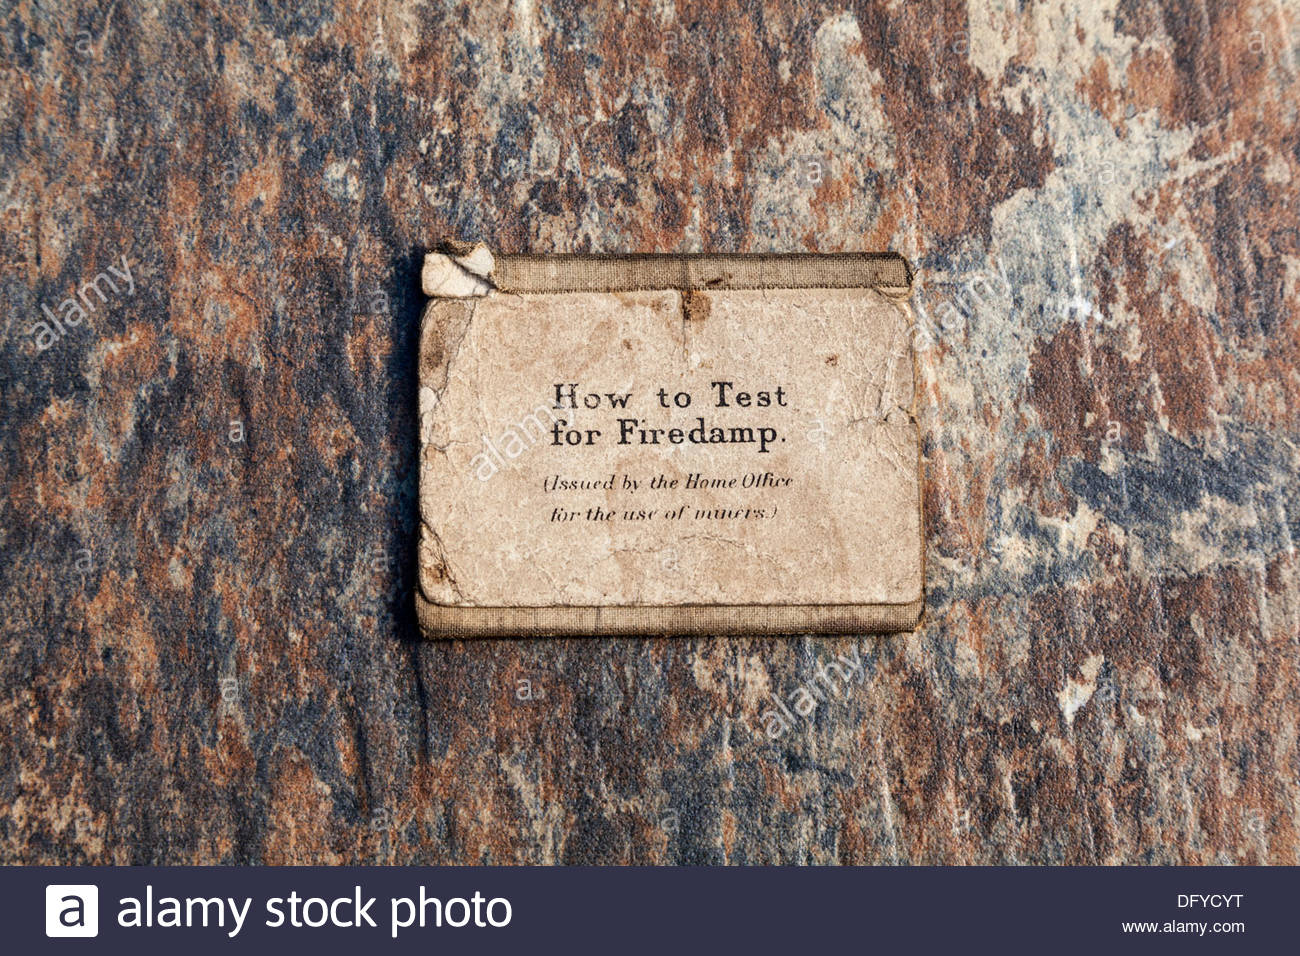 How to test for Firedamp - Instructions for miners - Stock Image